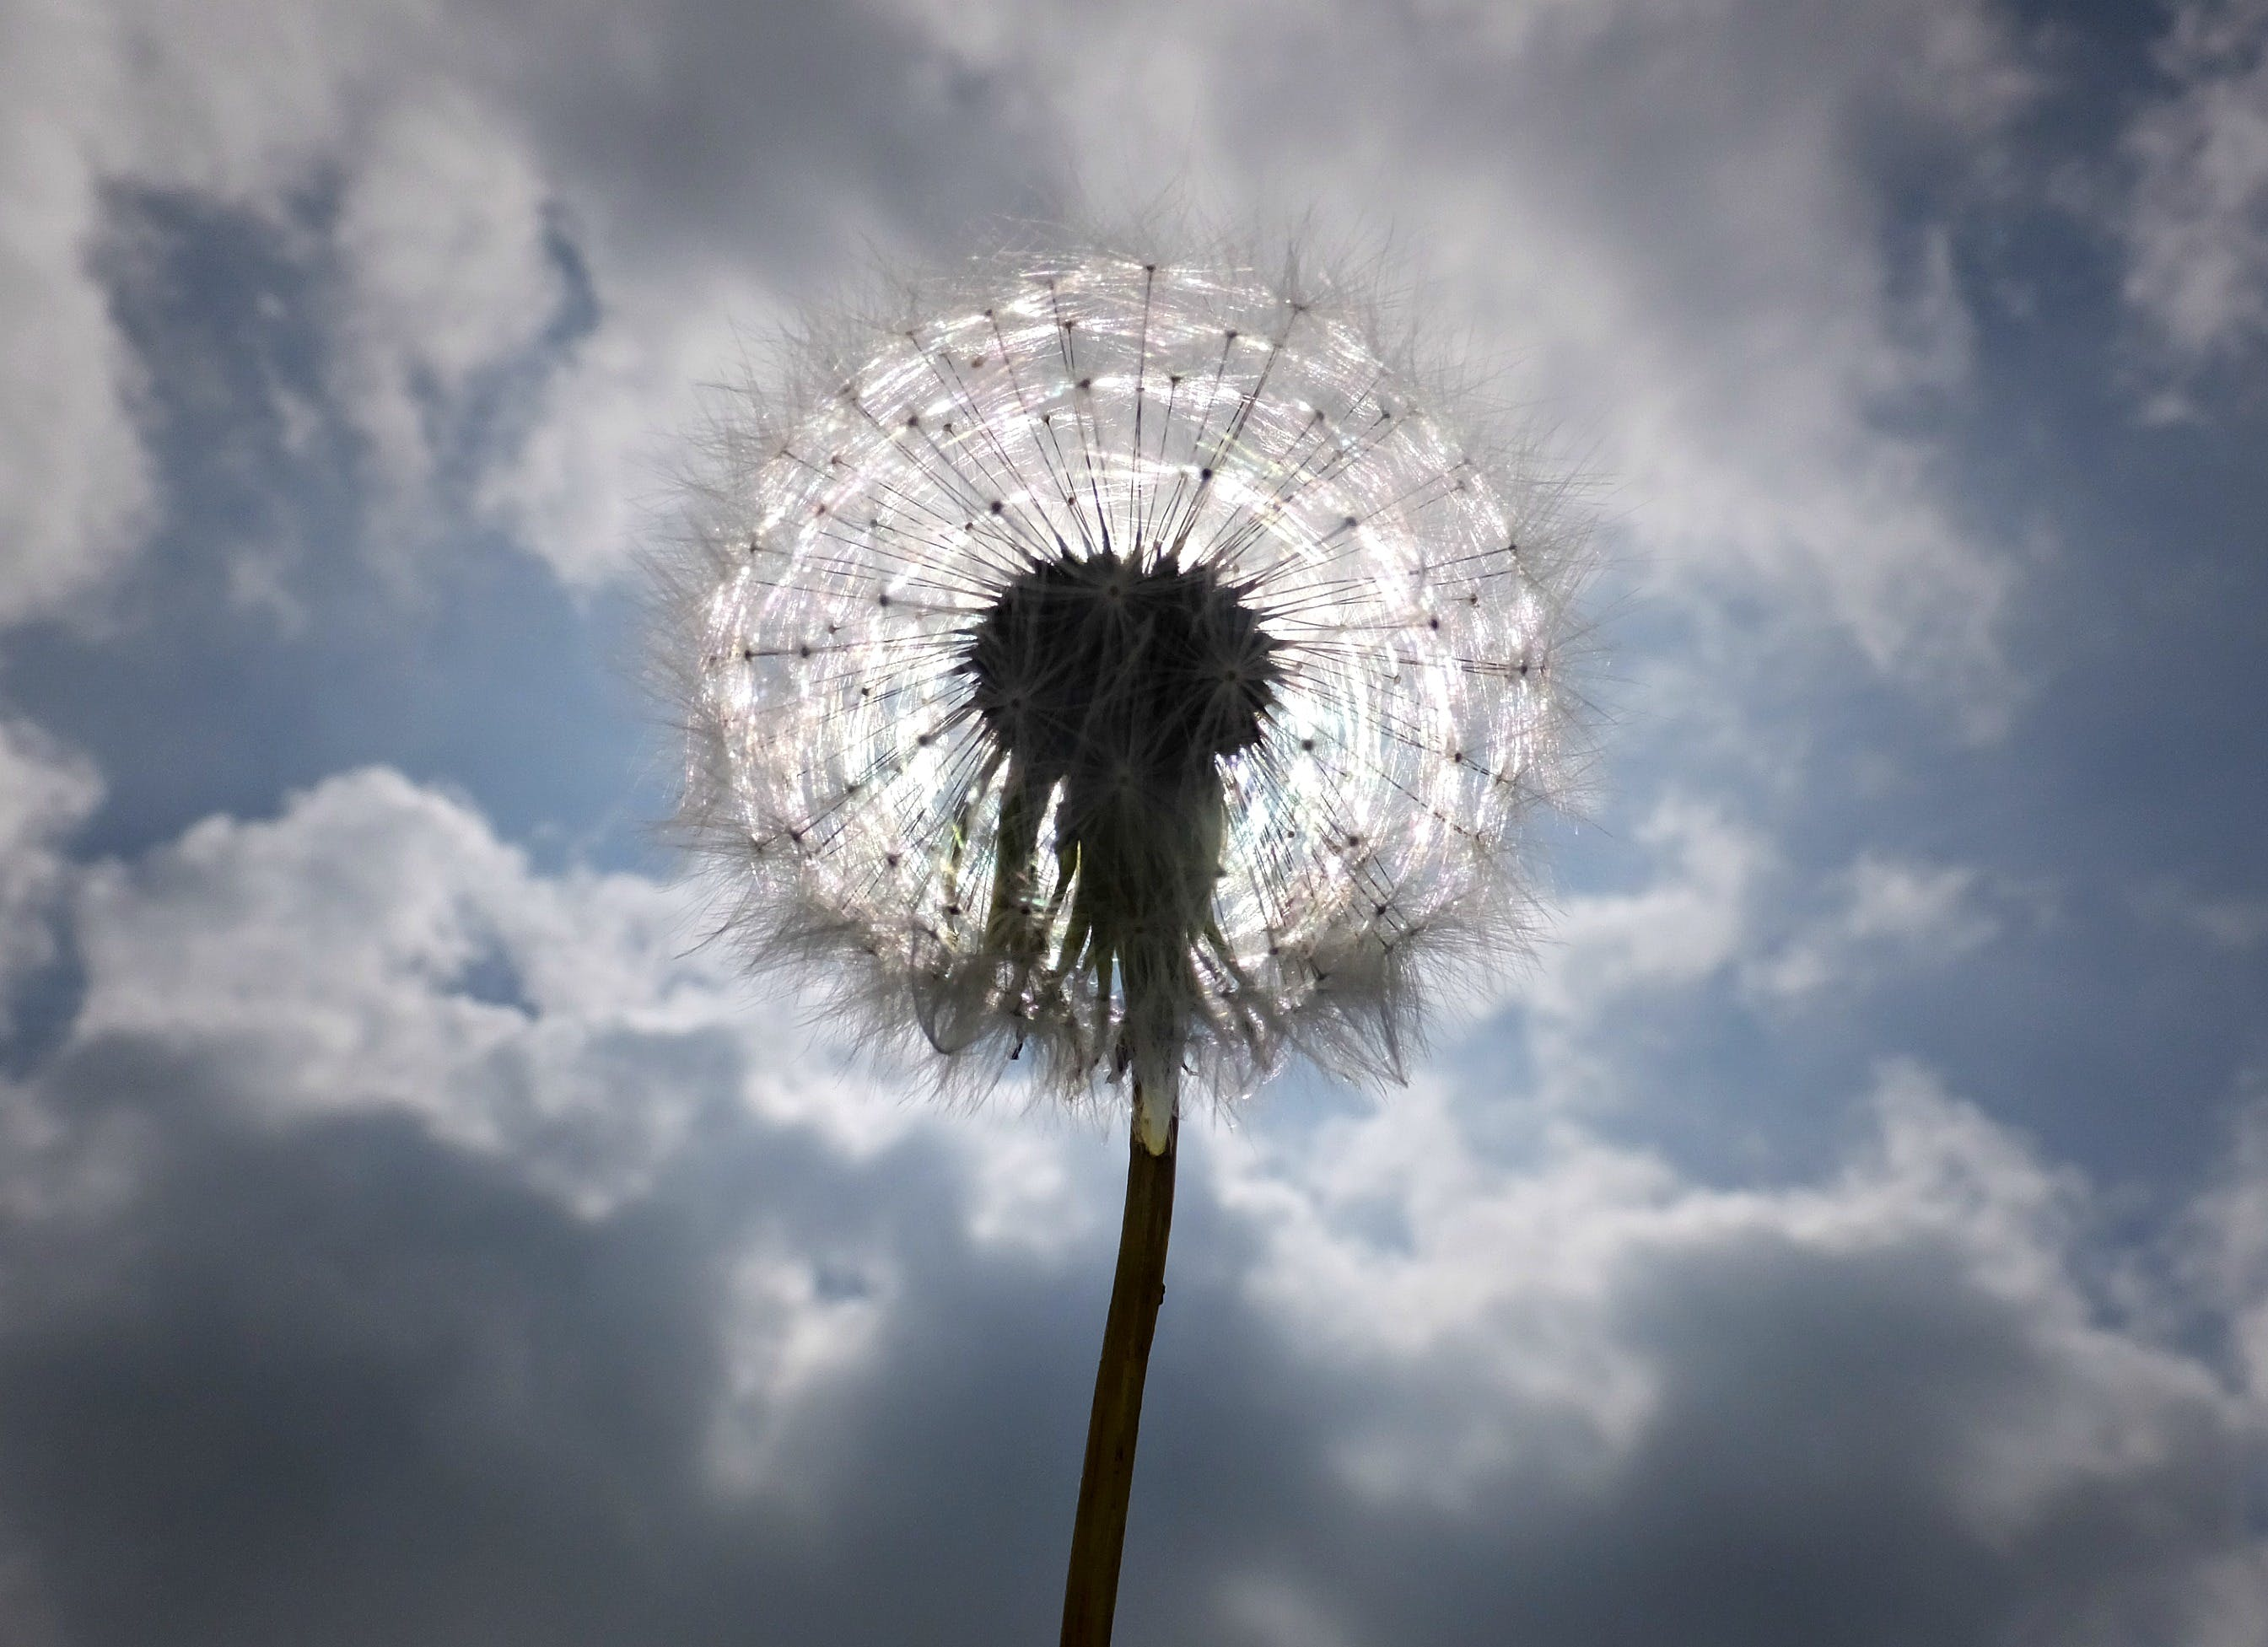 Free stock photo of clouds, cloudy, dandelion, dandelion seed